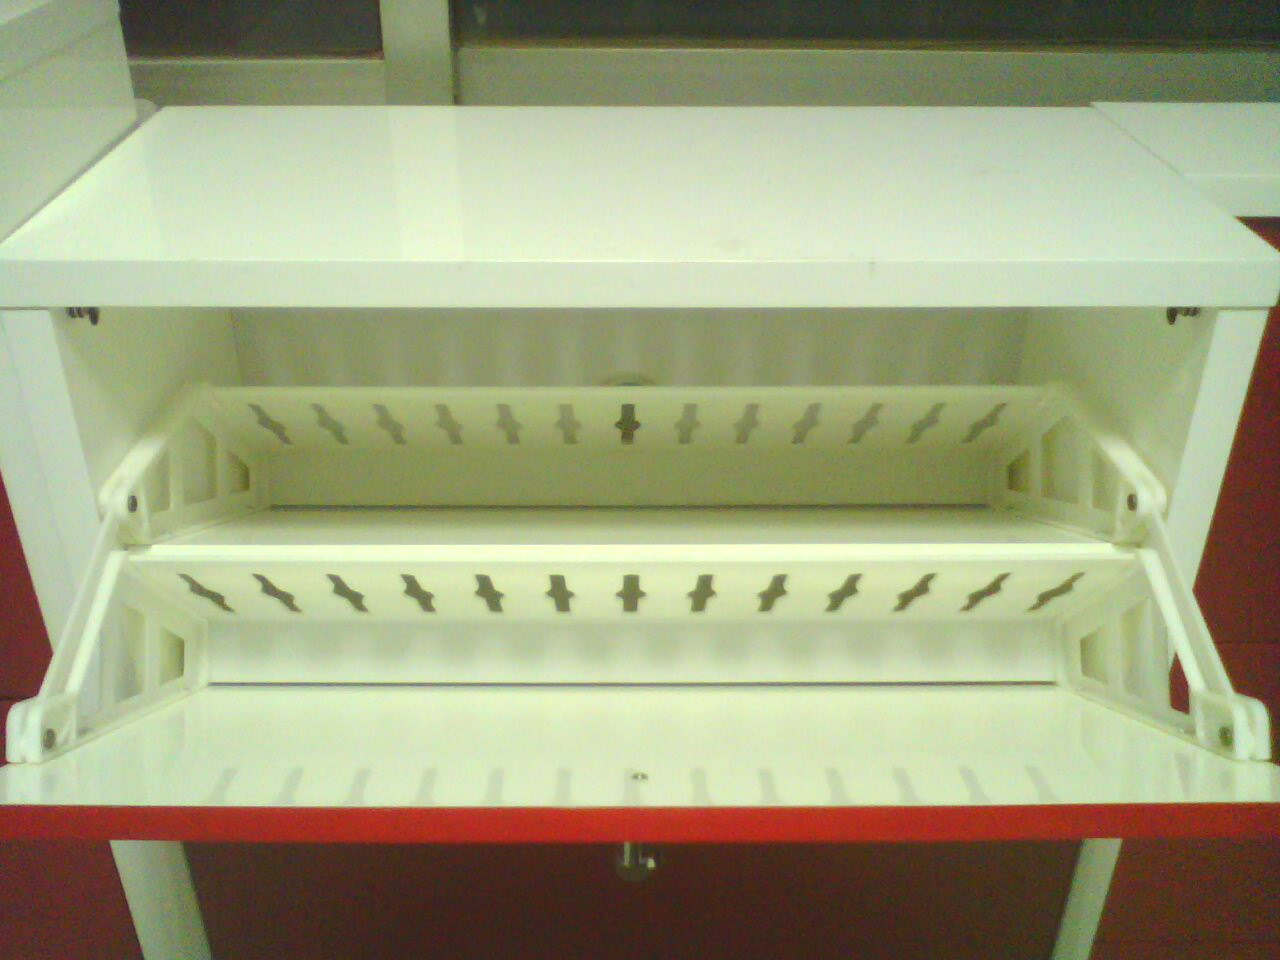 shoe rack fittings in plastic